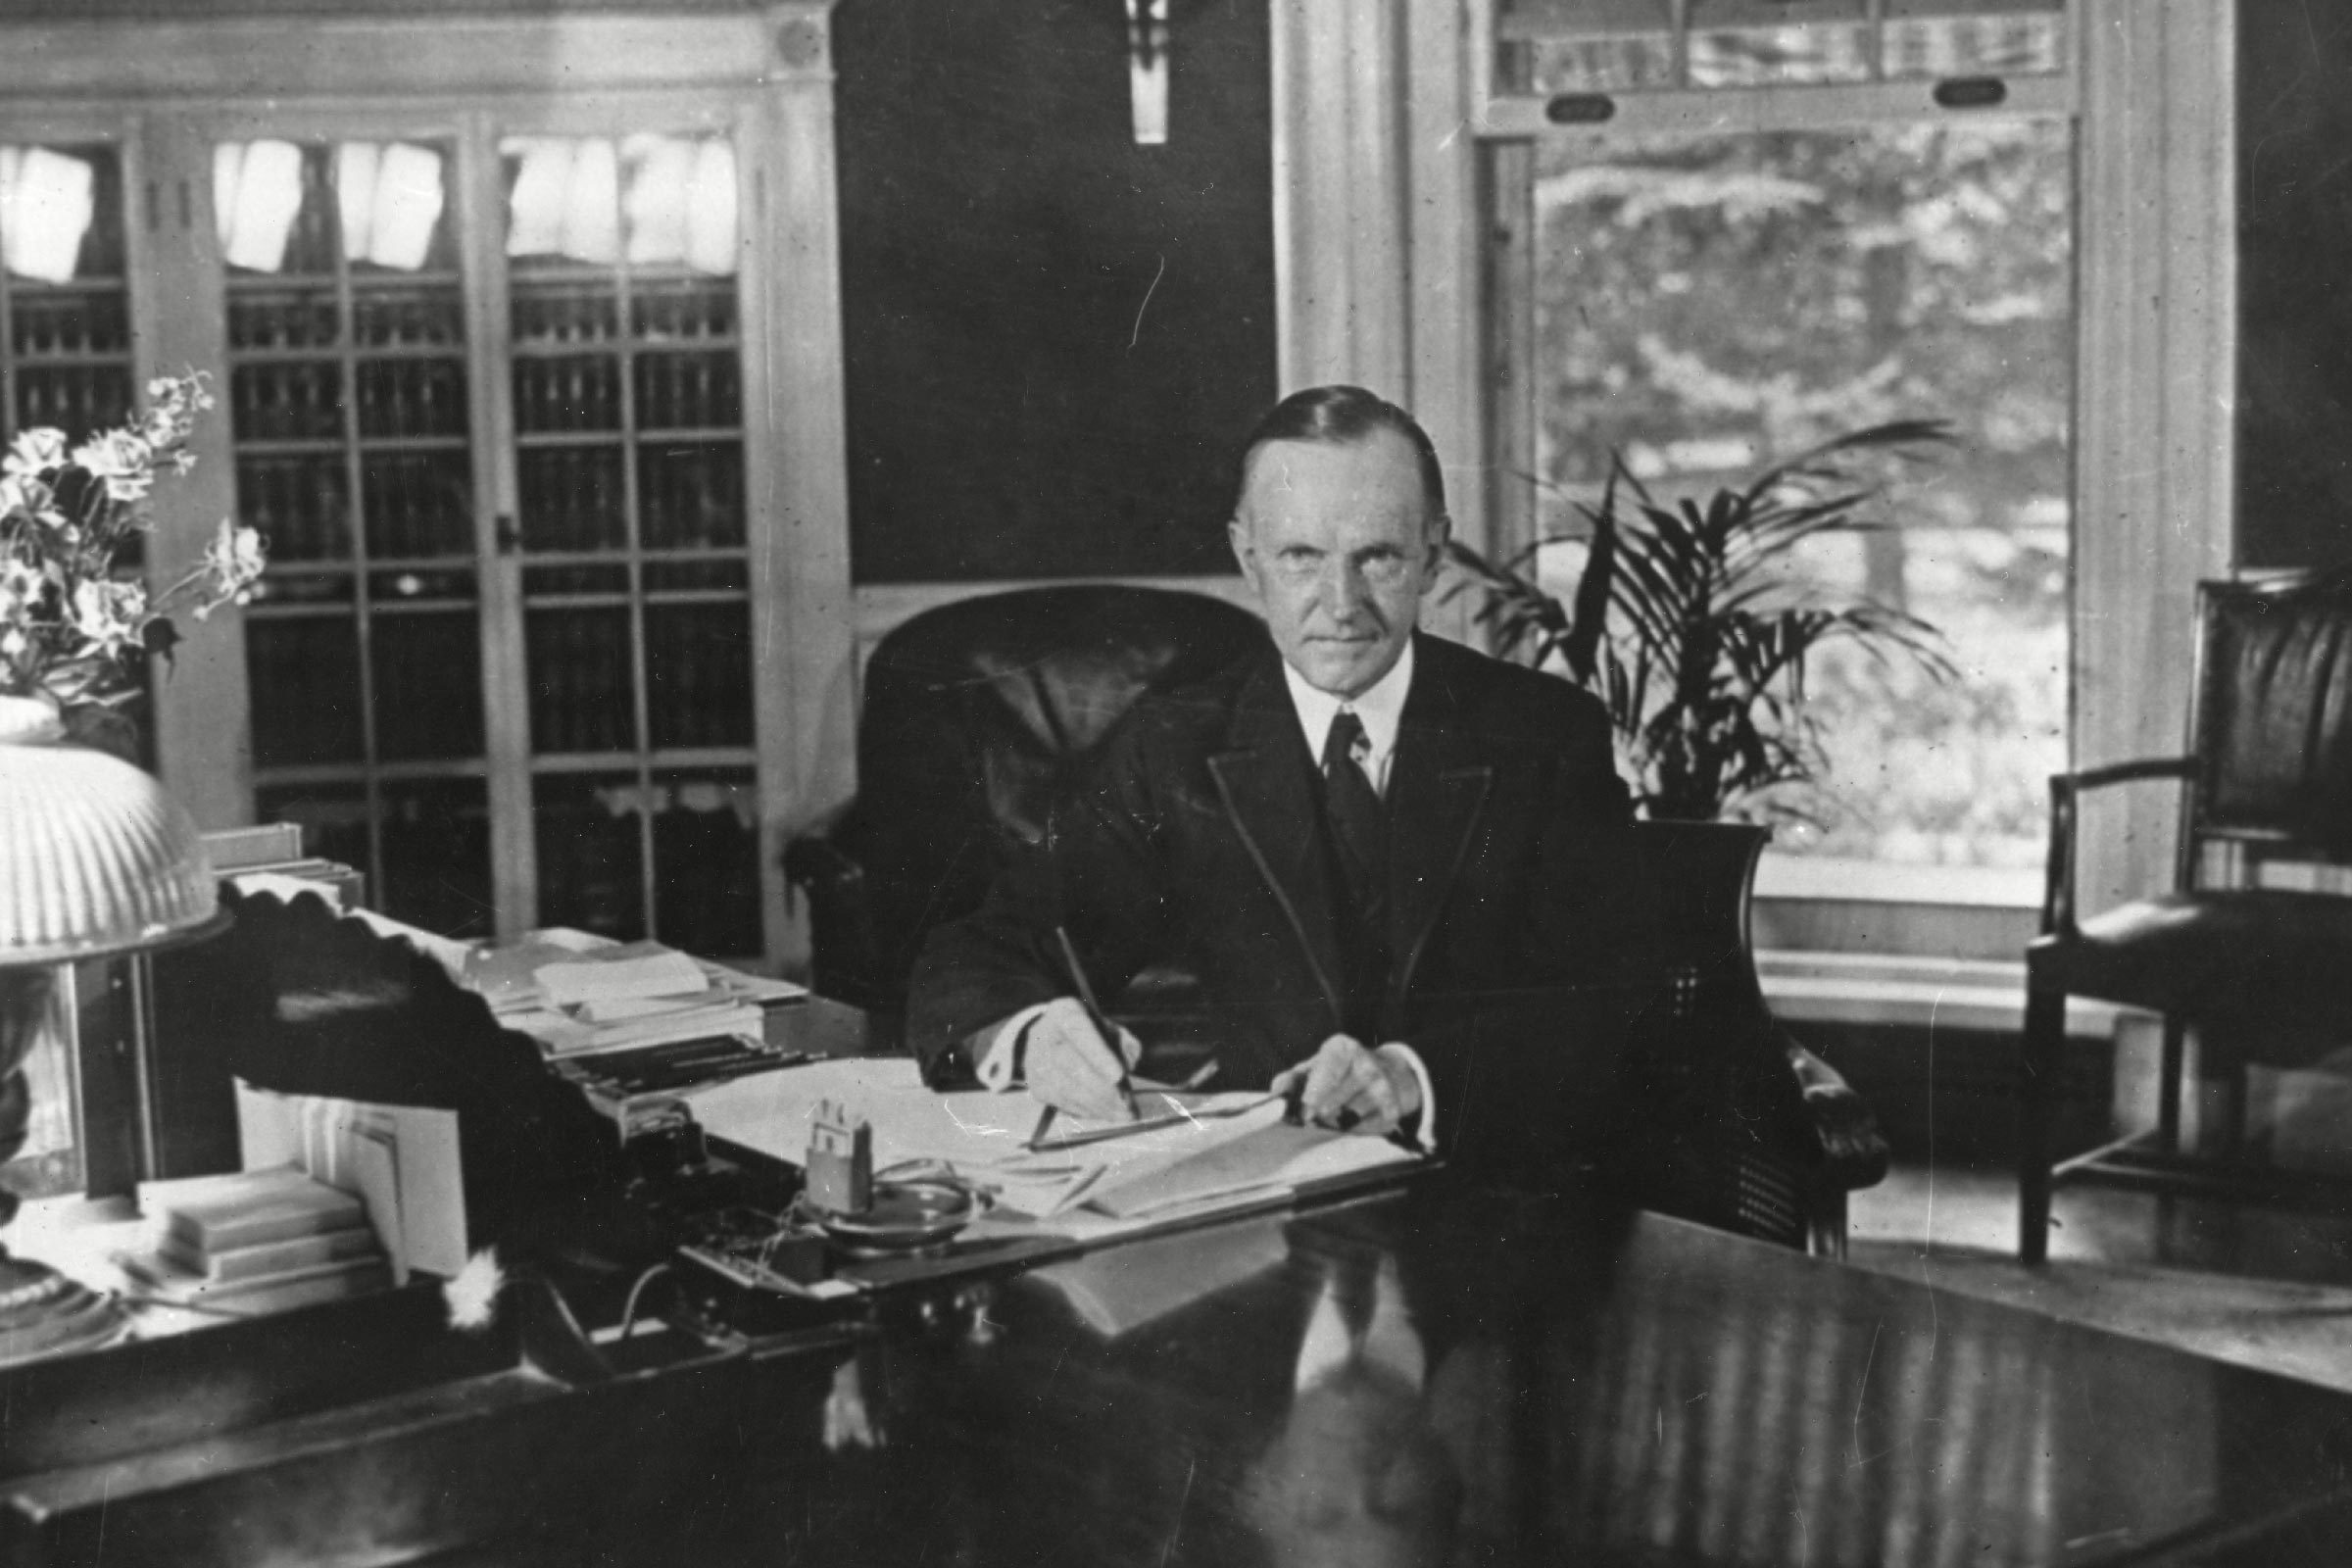 August 15, 1923 - President Calvin Coolidge at his desk in the White House.